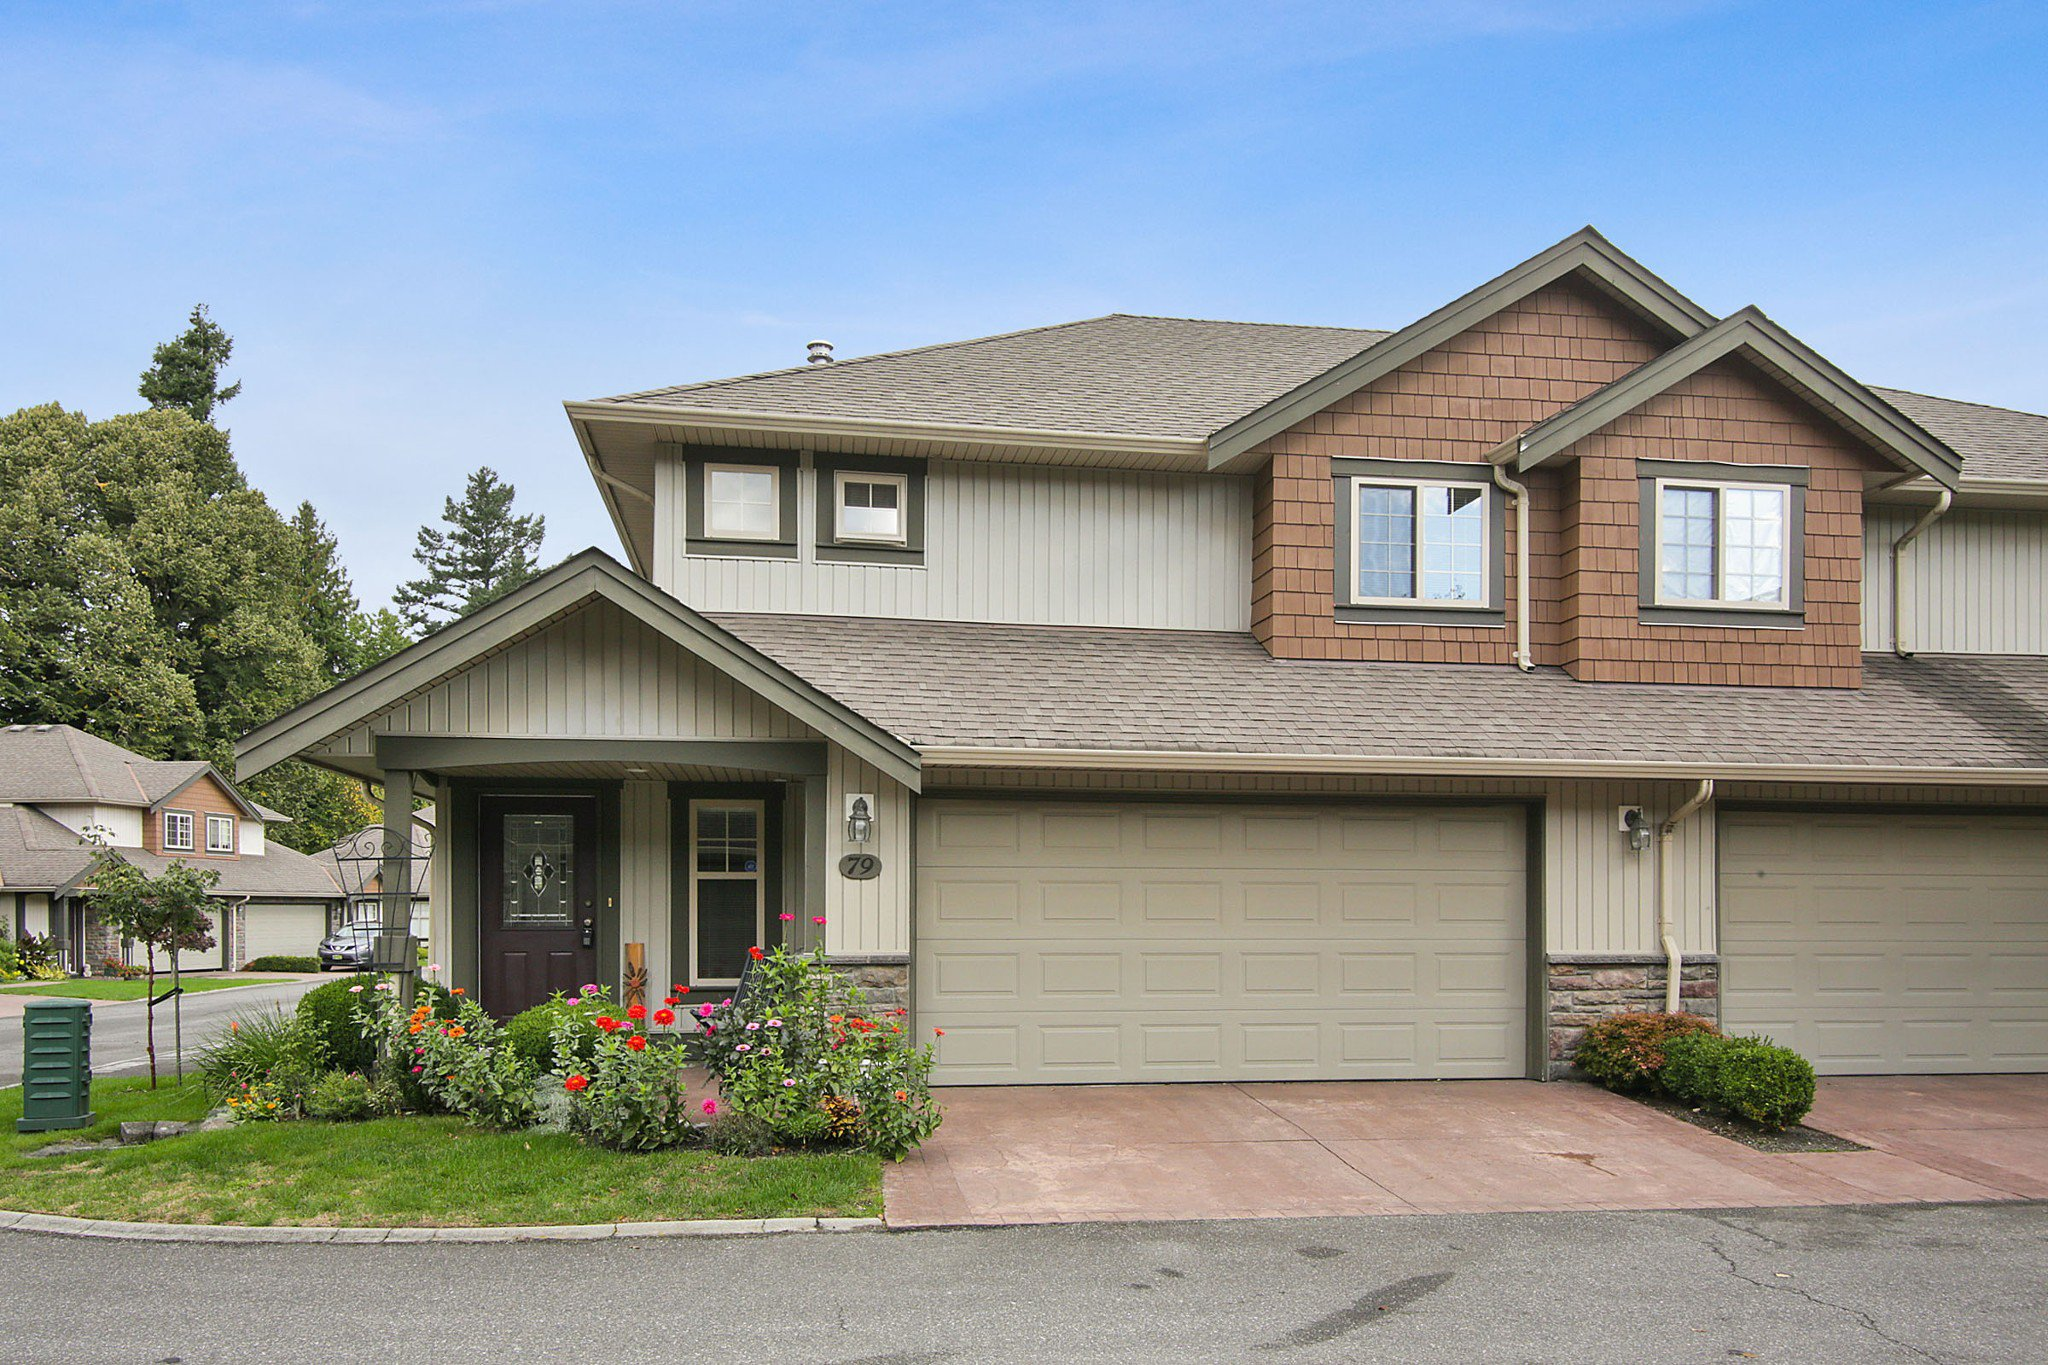 """Main Photo: 79 6887 SHEFFIELD Way in Chilliwack: Sardis East Vedder Rd Townhouse for sale in """"PARKSFIELD"""" (Sardis)  : MLS®# R2507804"""